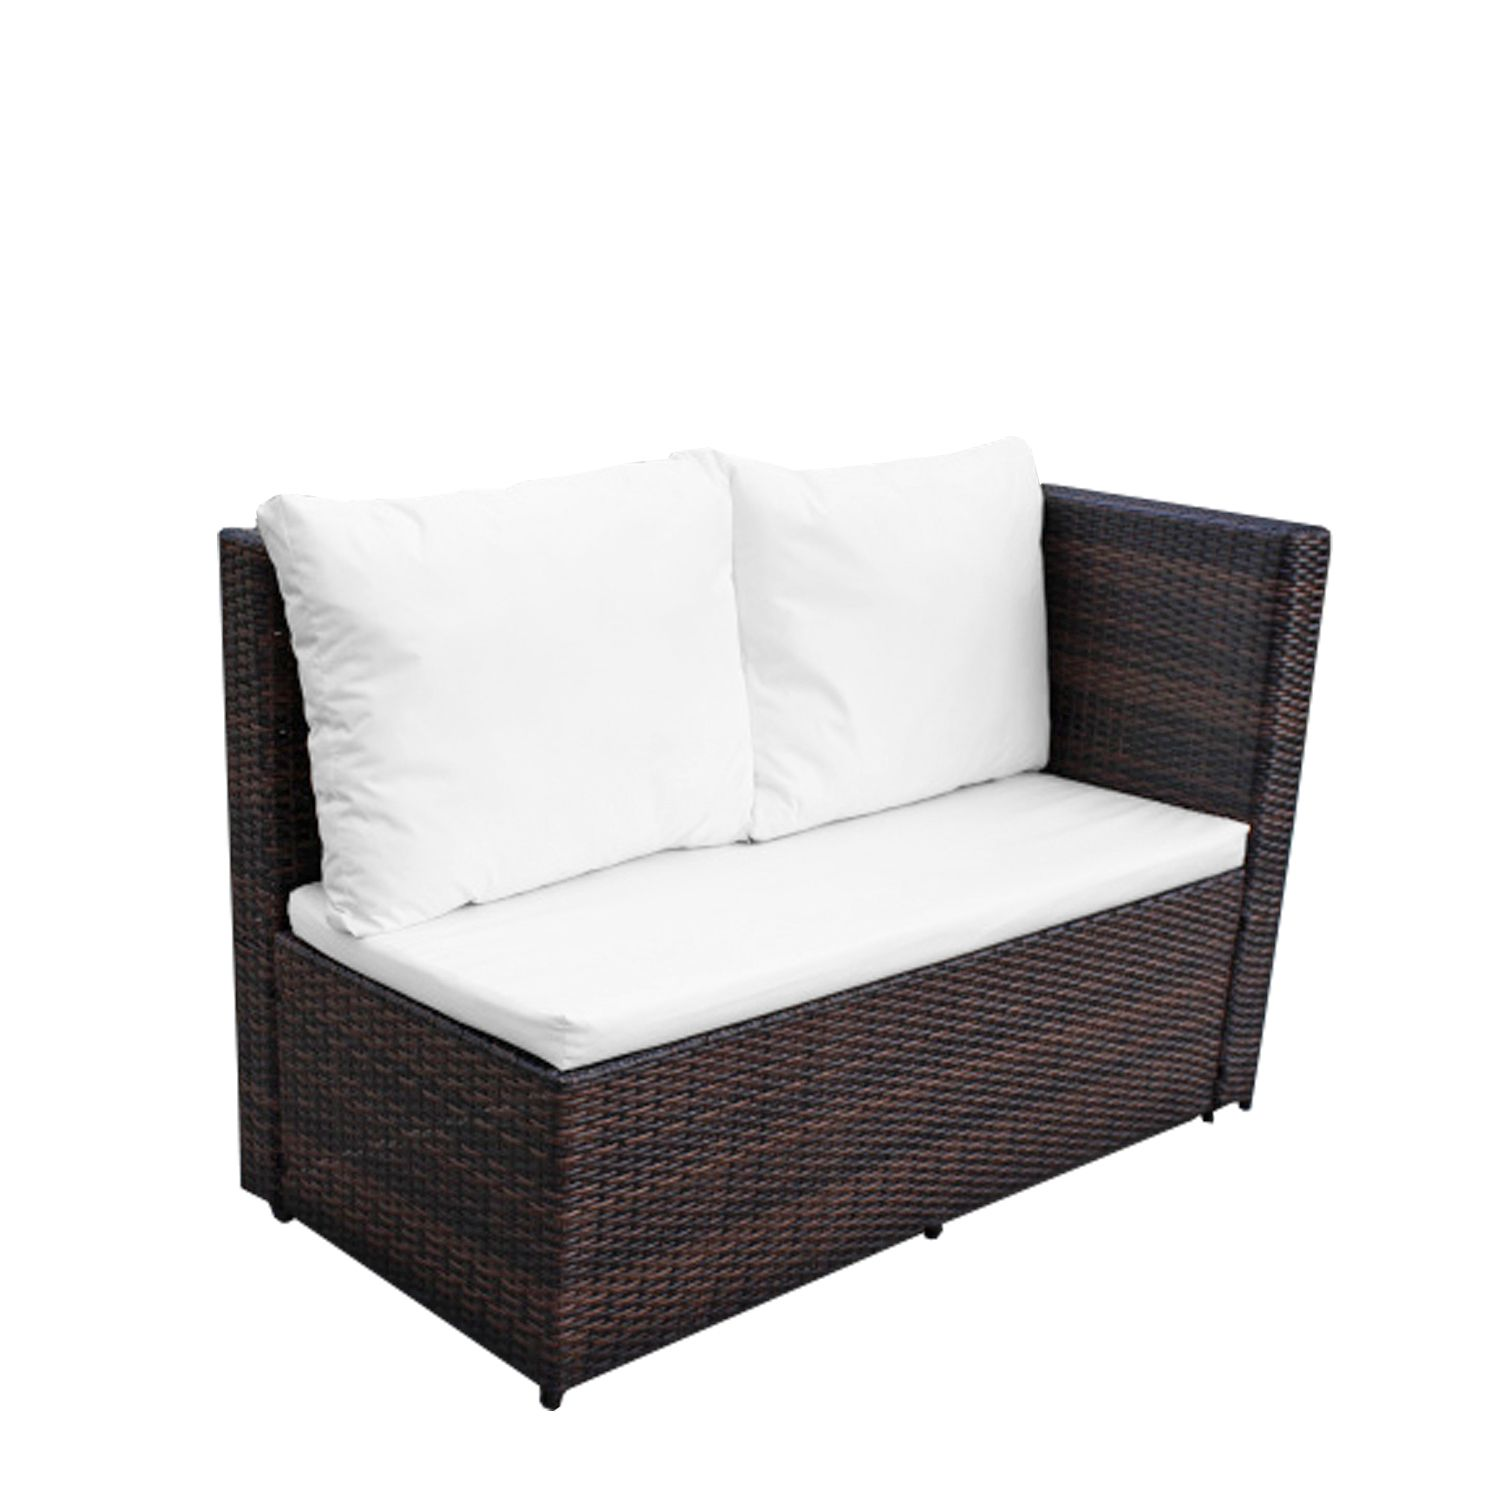 gartenm bel set 8er ecklounge comfort dining premium polyrattan braun asviva ebay. Black Bedroom Furniture Sets. Home Design Ideas